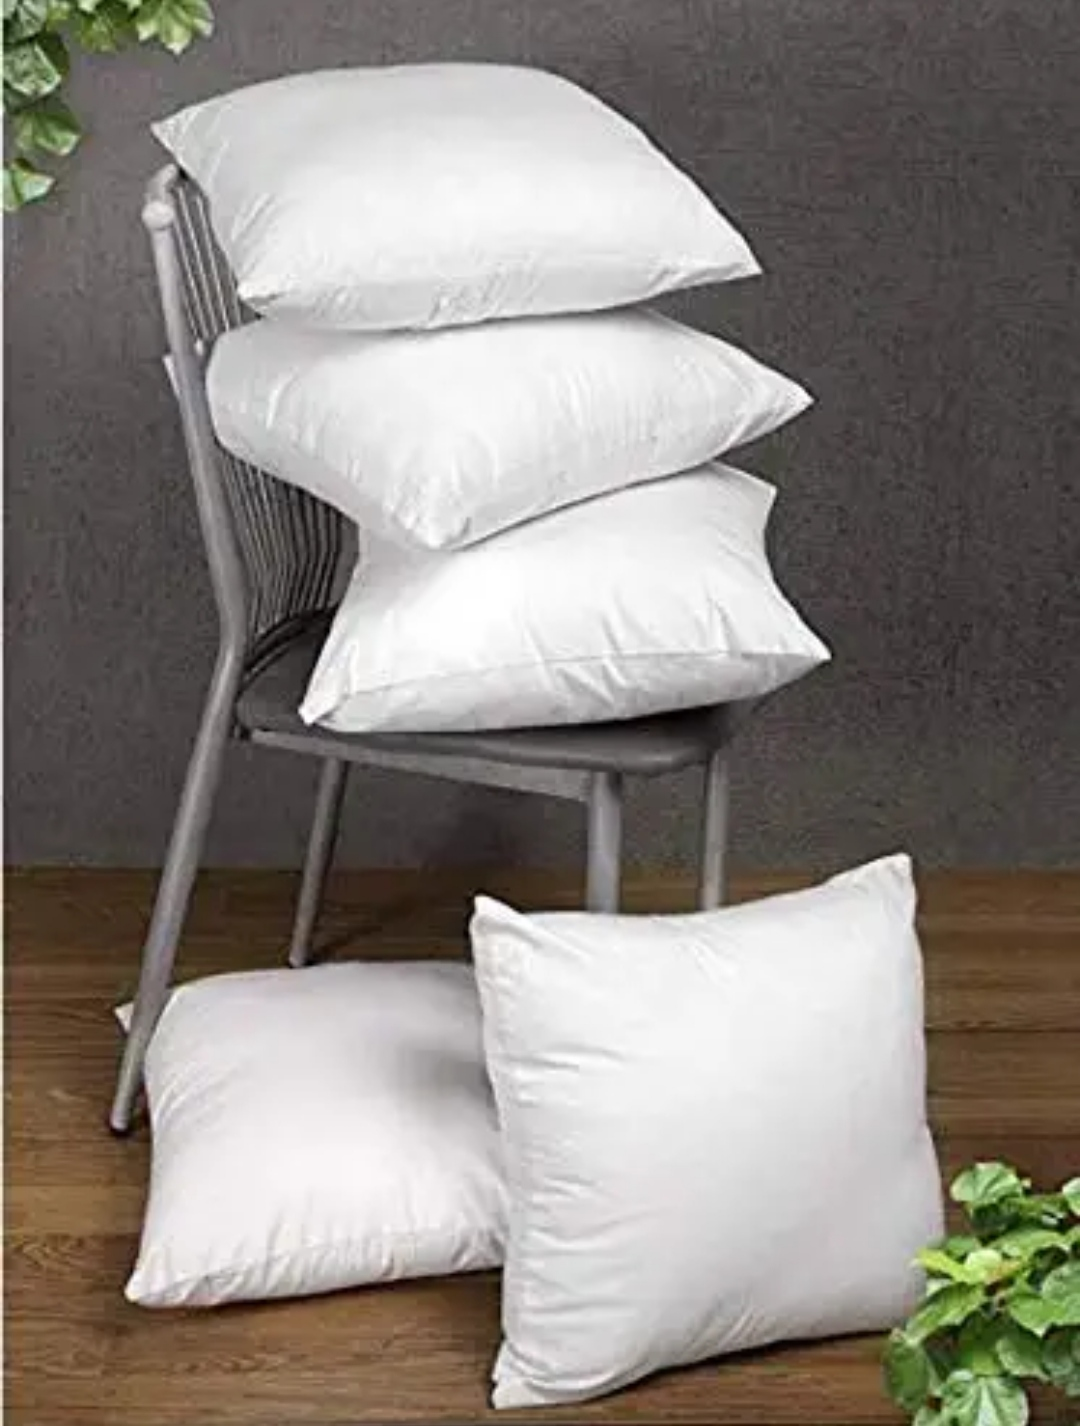 Soft Quality Premium Cushion Set of 5-16x16 Inches